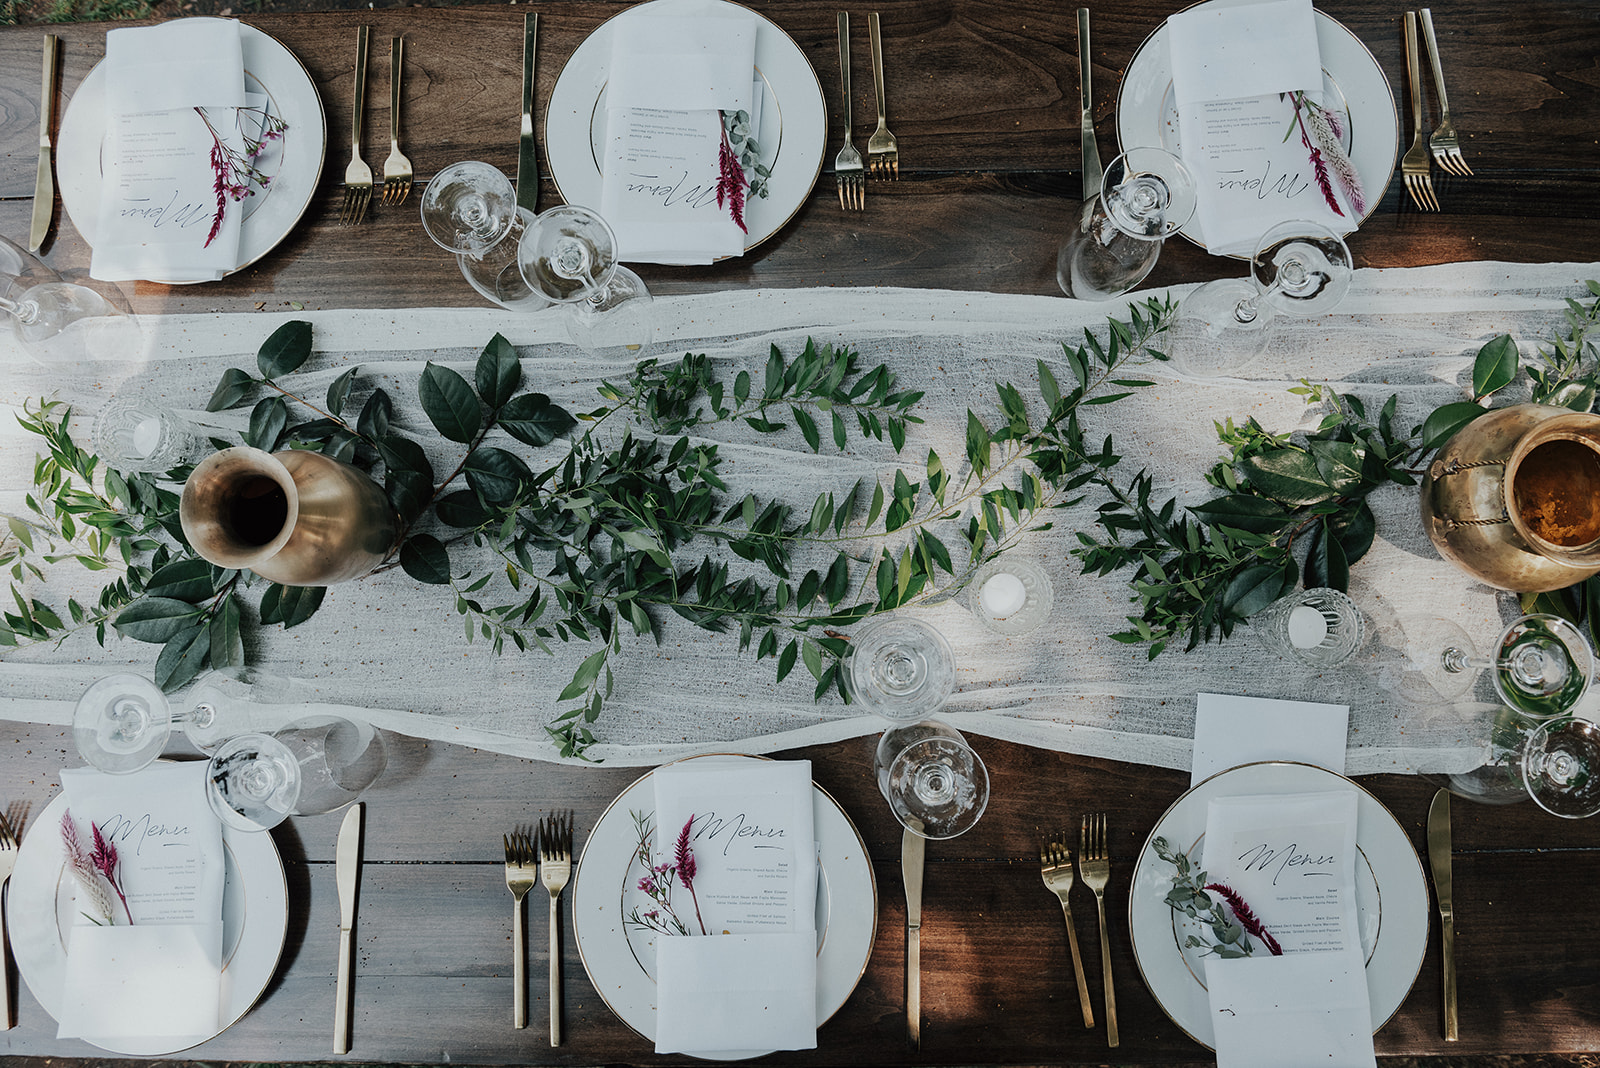 Greenery runner and gold vases to repurpose bridal bouquets at the head table. Healdsburg wedding flowers by Venn Floral at Ru's Farm photographed by Logan Cole.